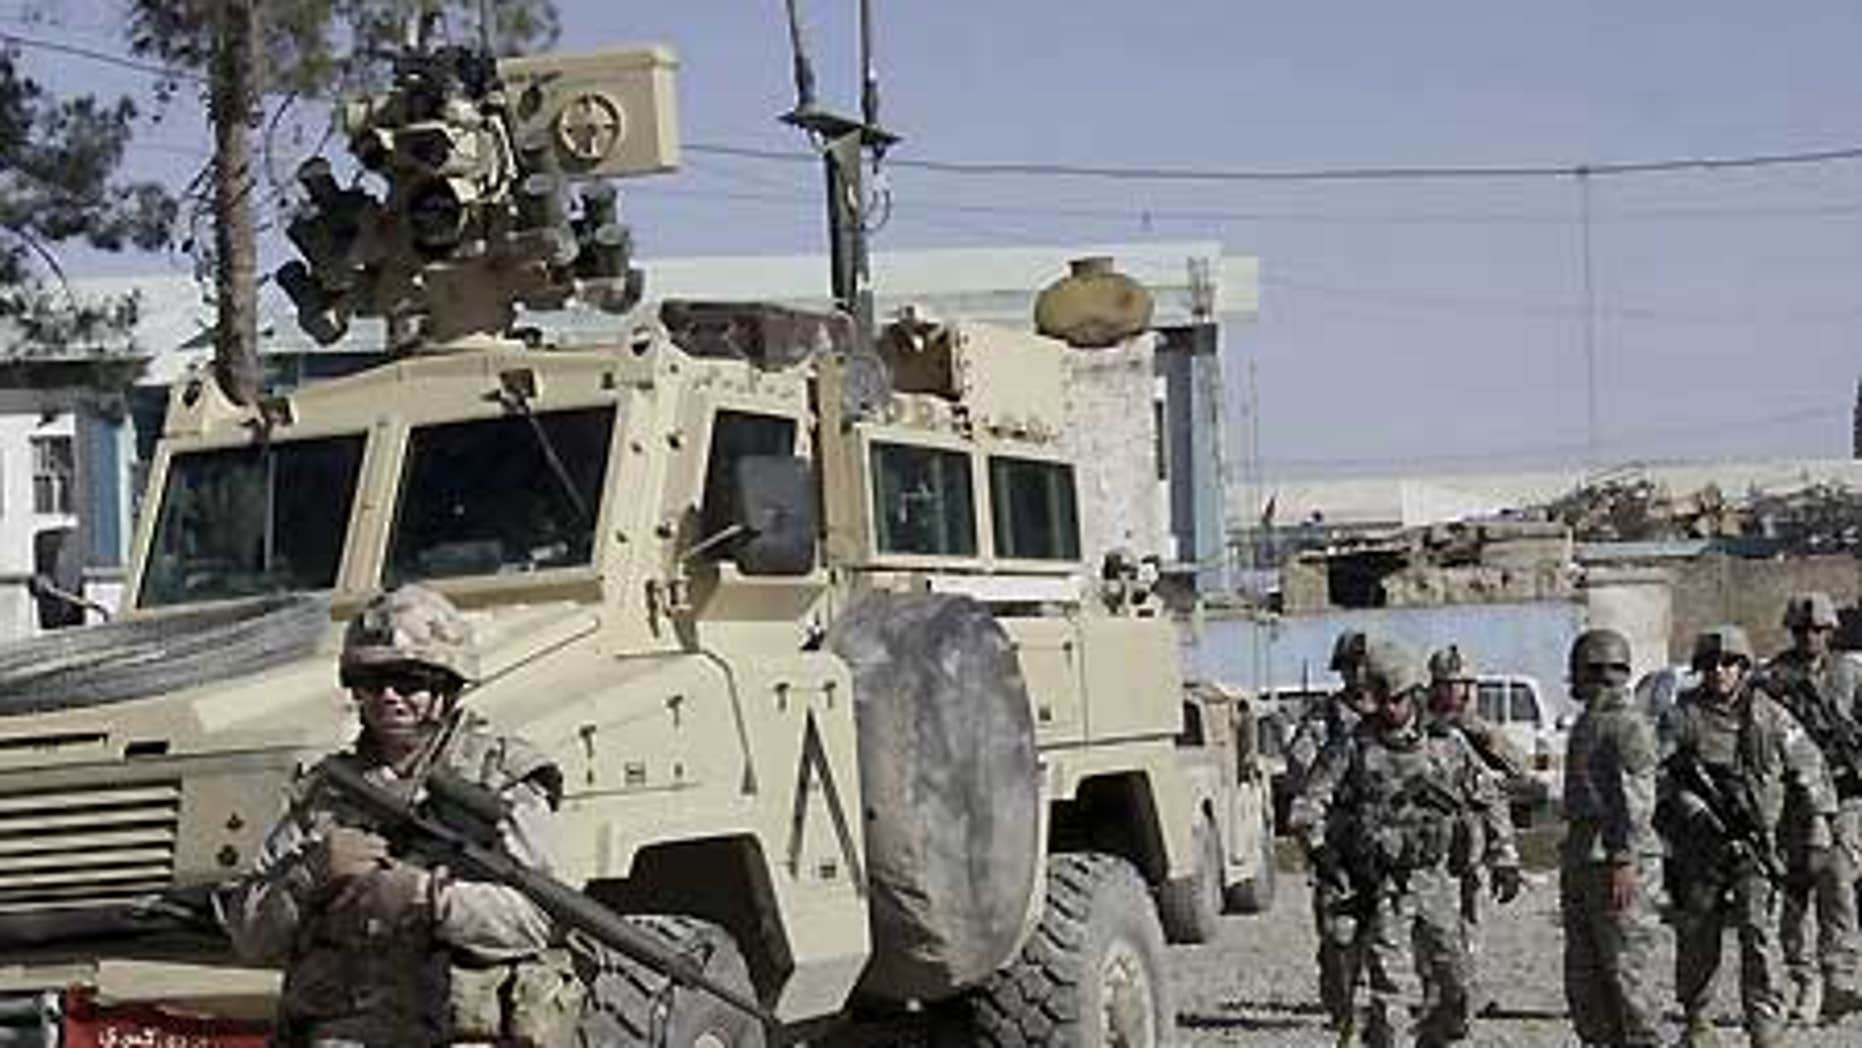 Feb. 15: U.S., Canadian soldiers investigate suspected Taliban militants in Kandahar, Afghanistan.